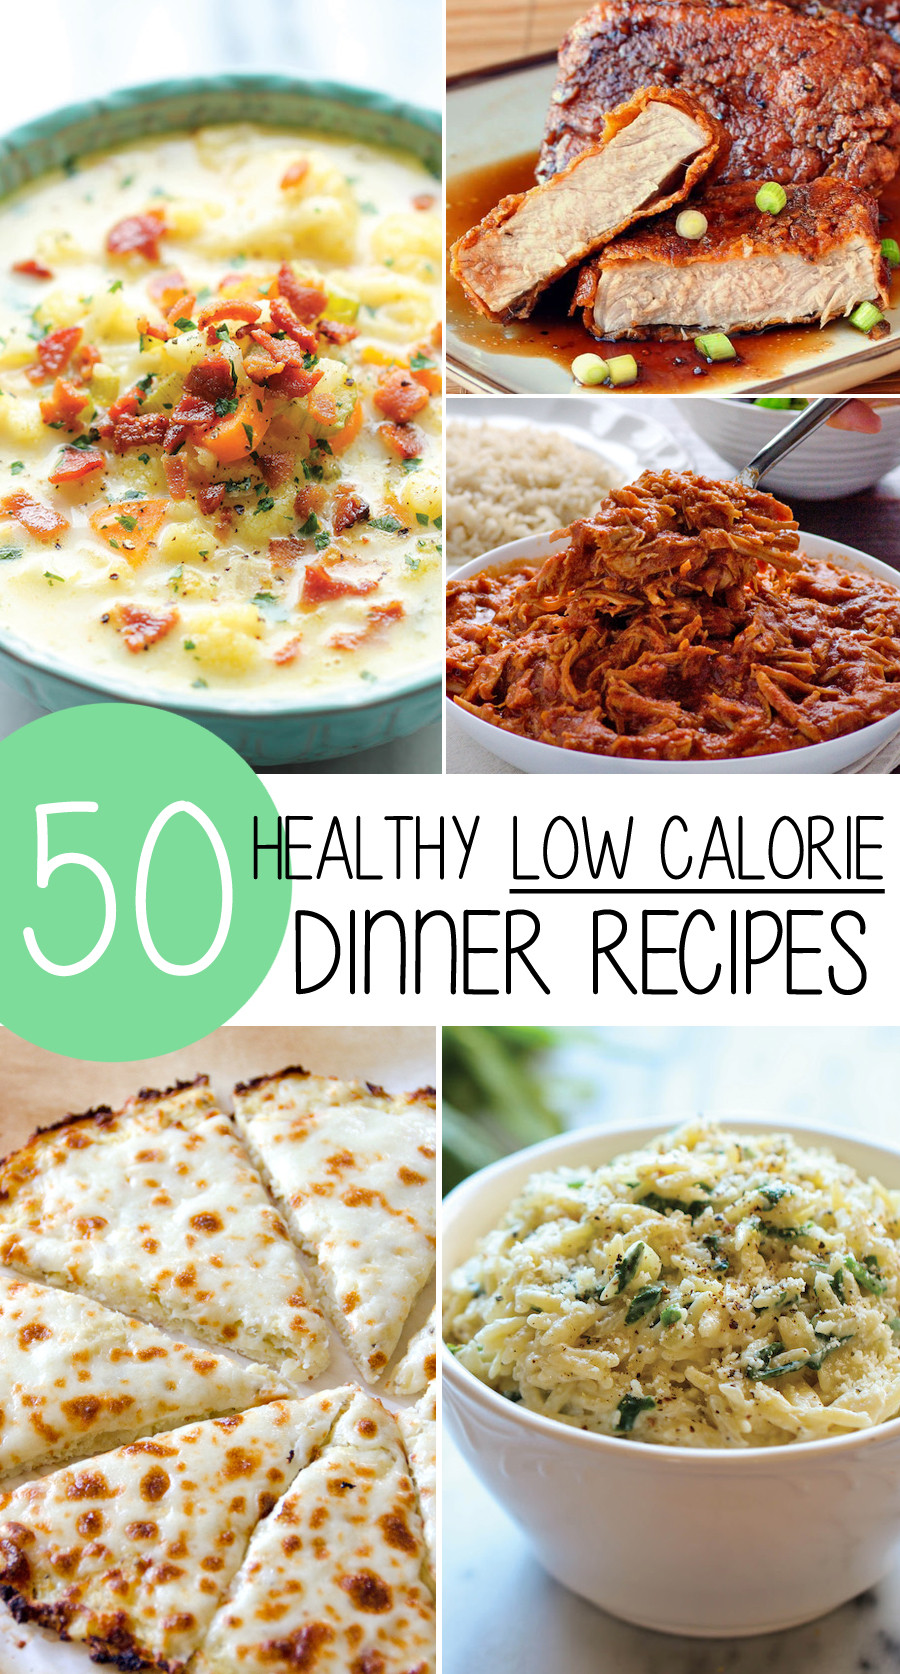 Healthy Low Calorie Snacks For Weight Loss  50 Healthy Low Calorie Weight Loss Dinner Recipes